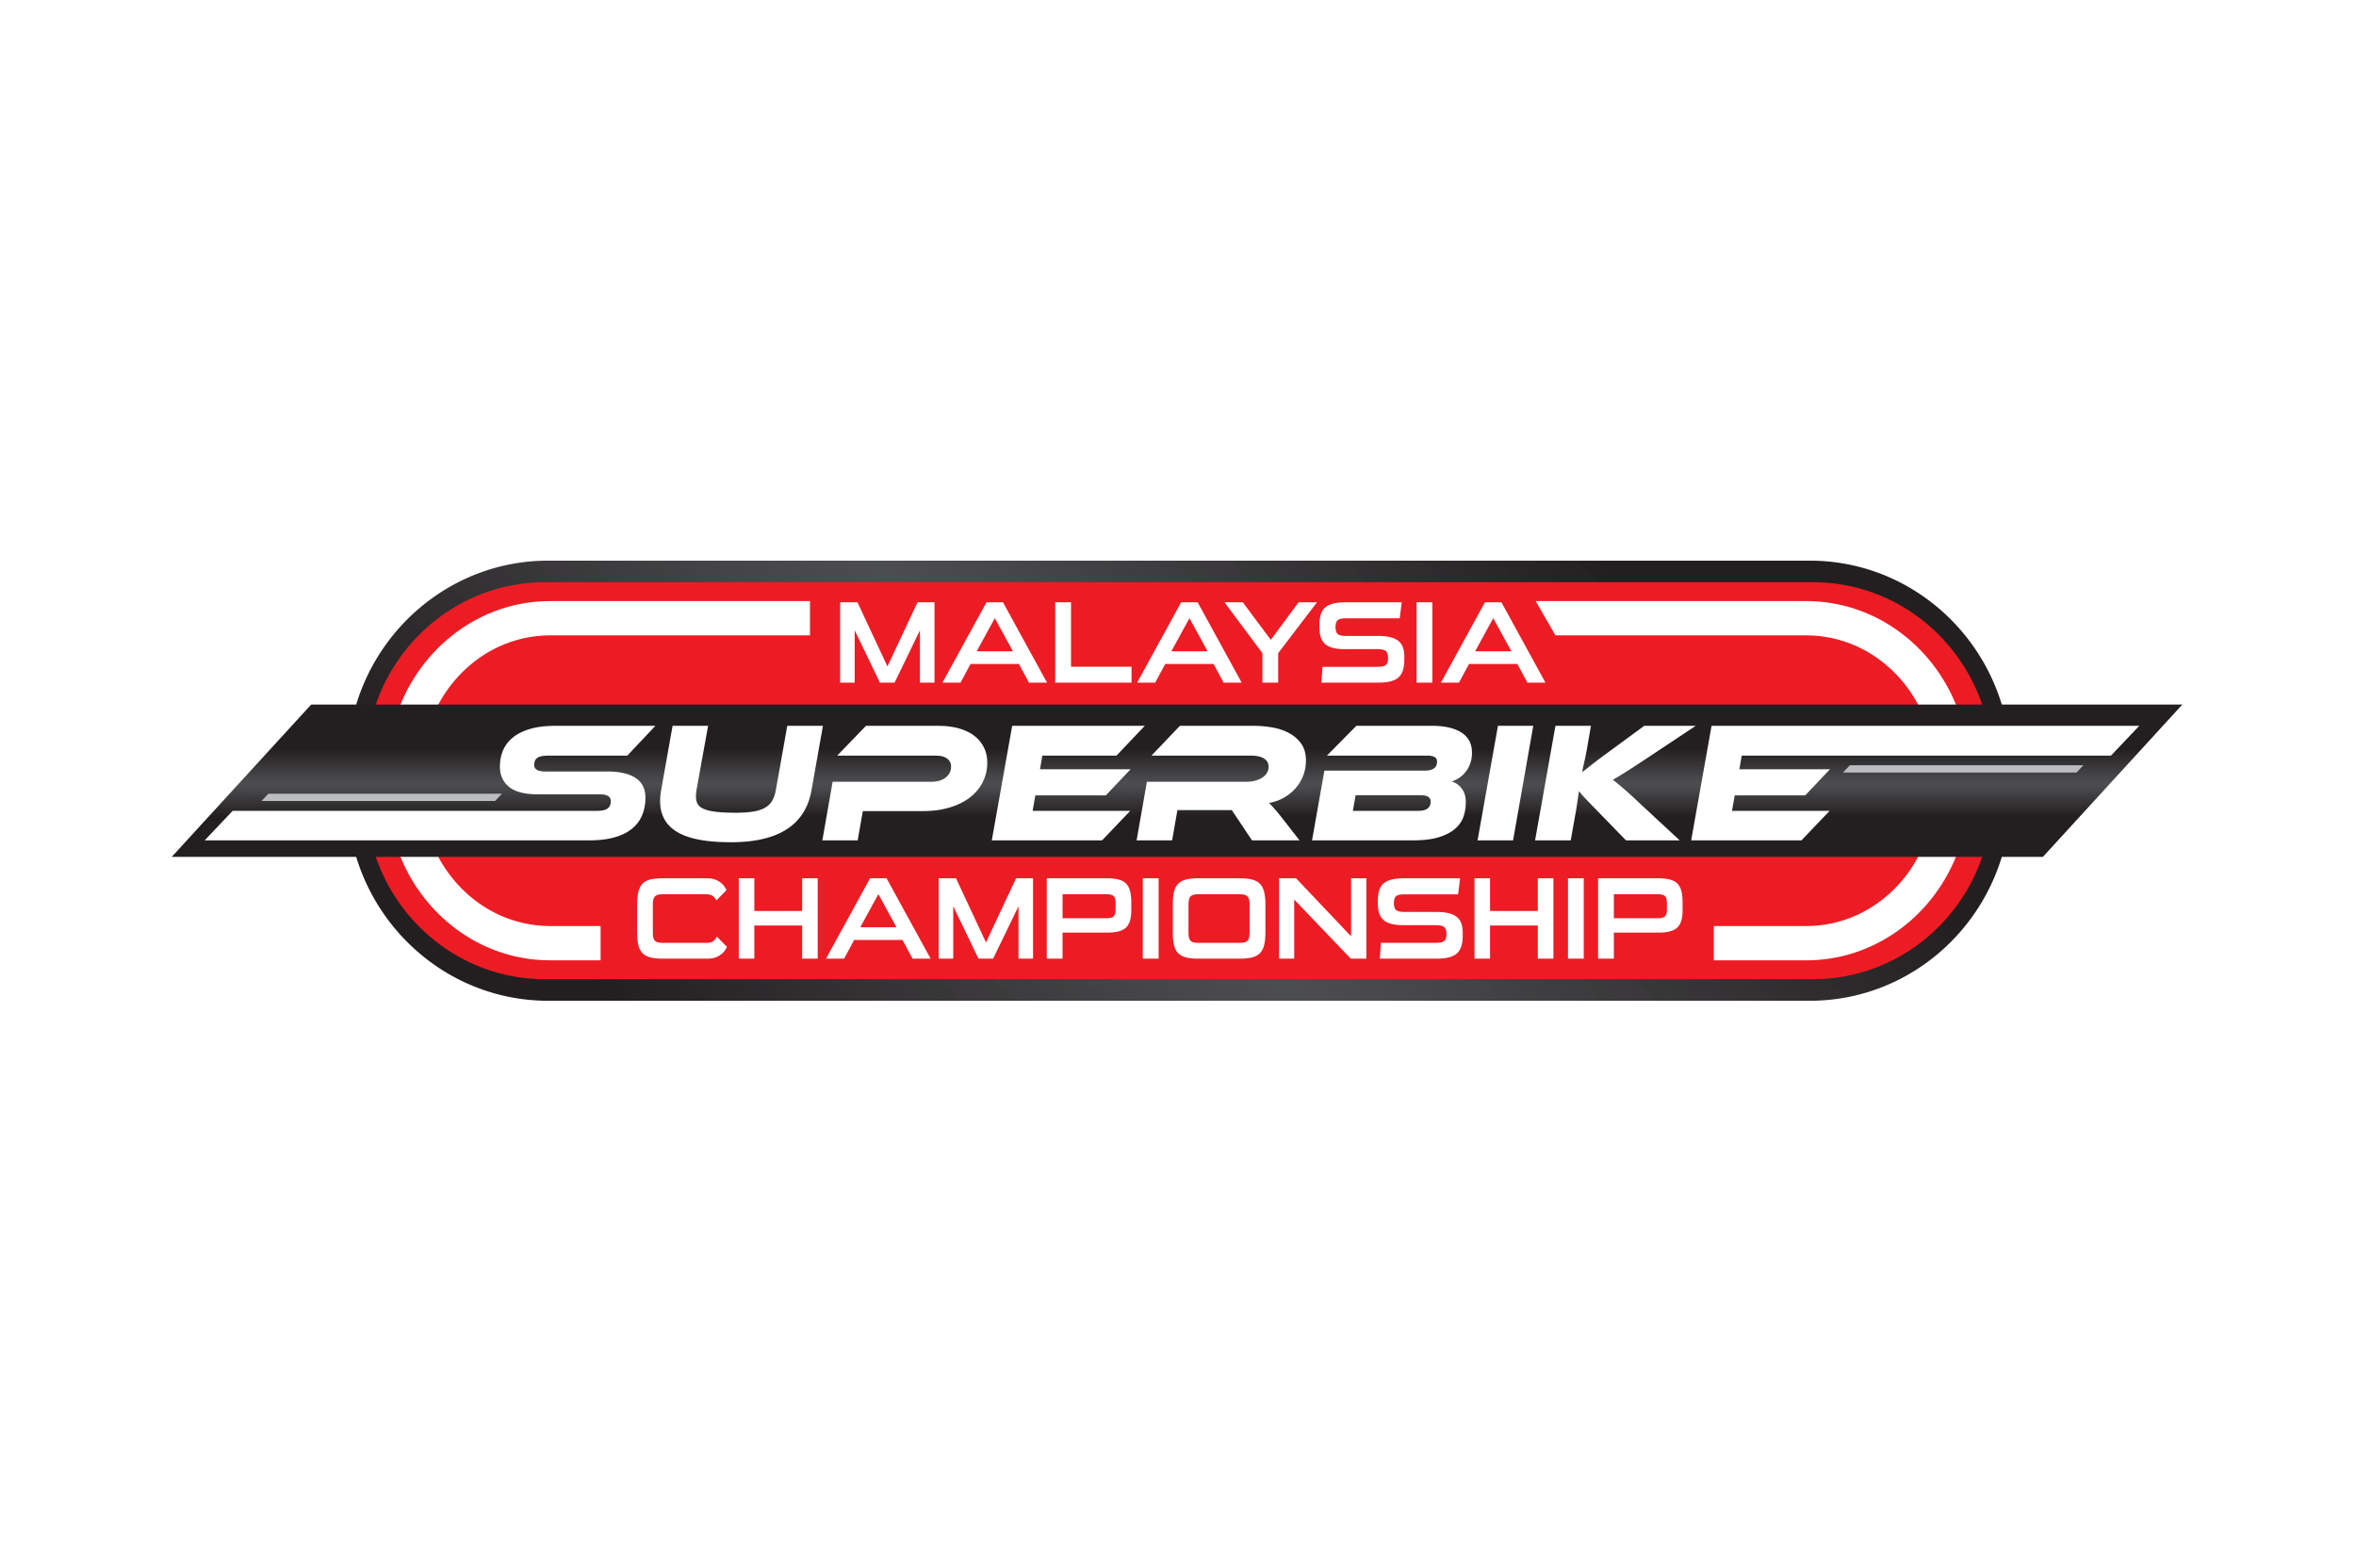 Sepang International Circuit And Two Wheels Motor Racing Join Forces To Host 2019 Malaysia Superbike Championship Asia Road Racing Championship